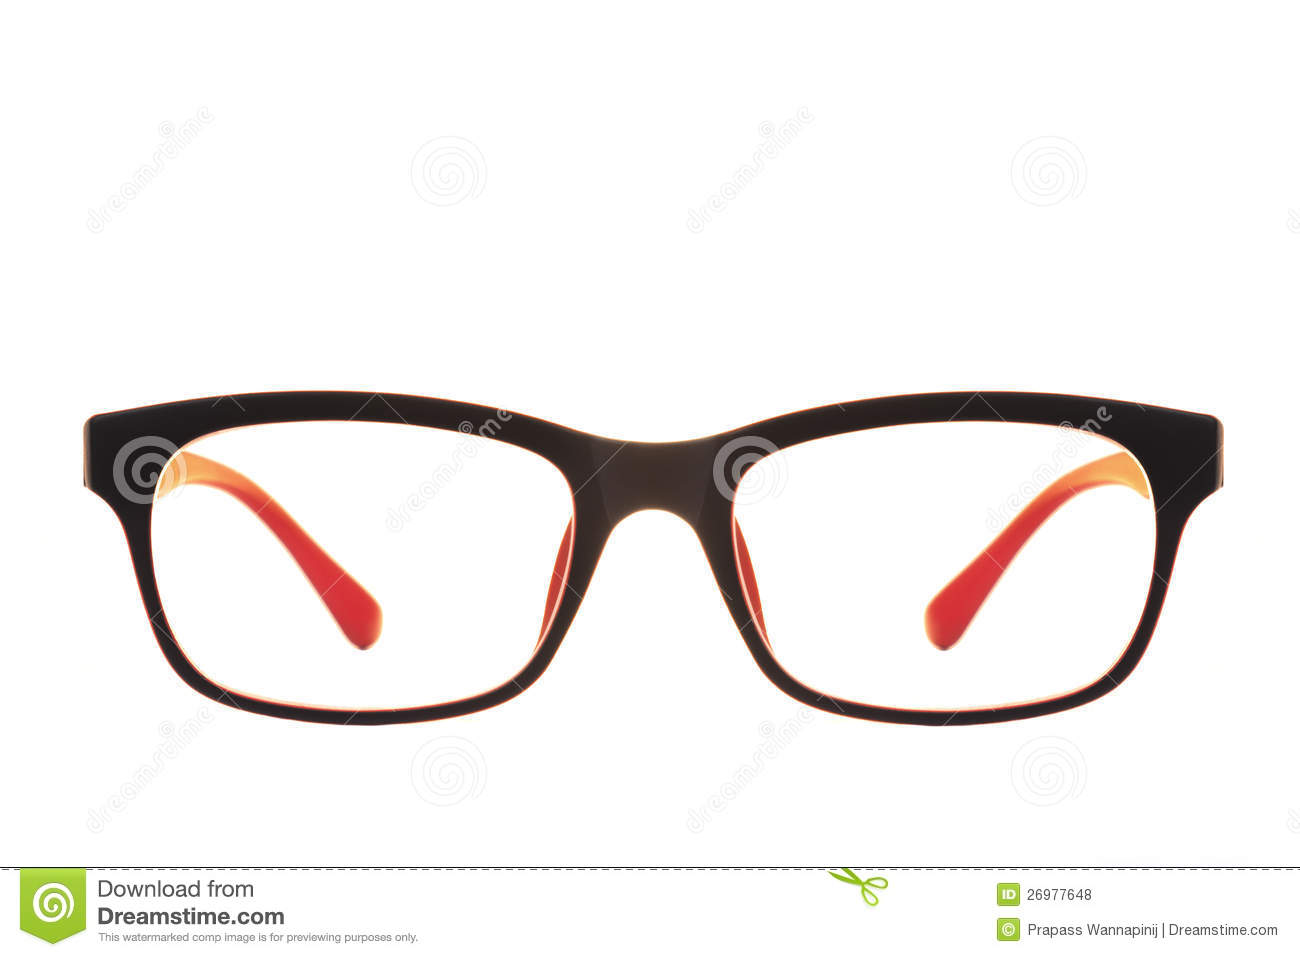 Modern red and black fashion eye glasses isolated